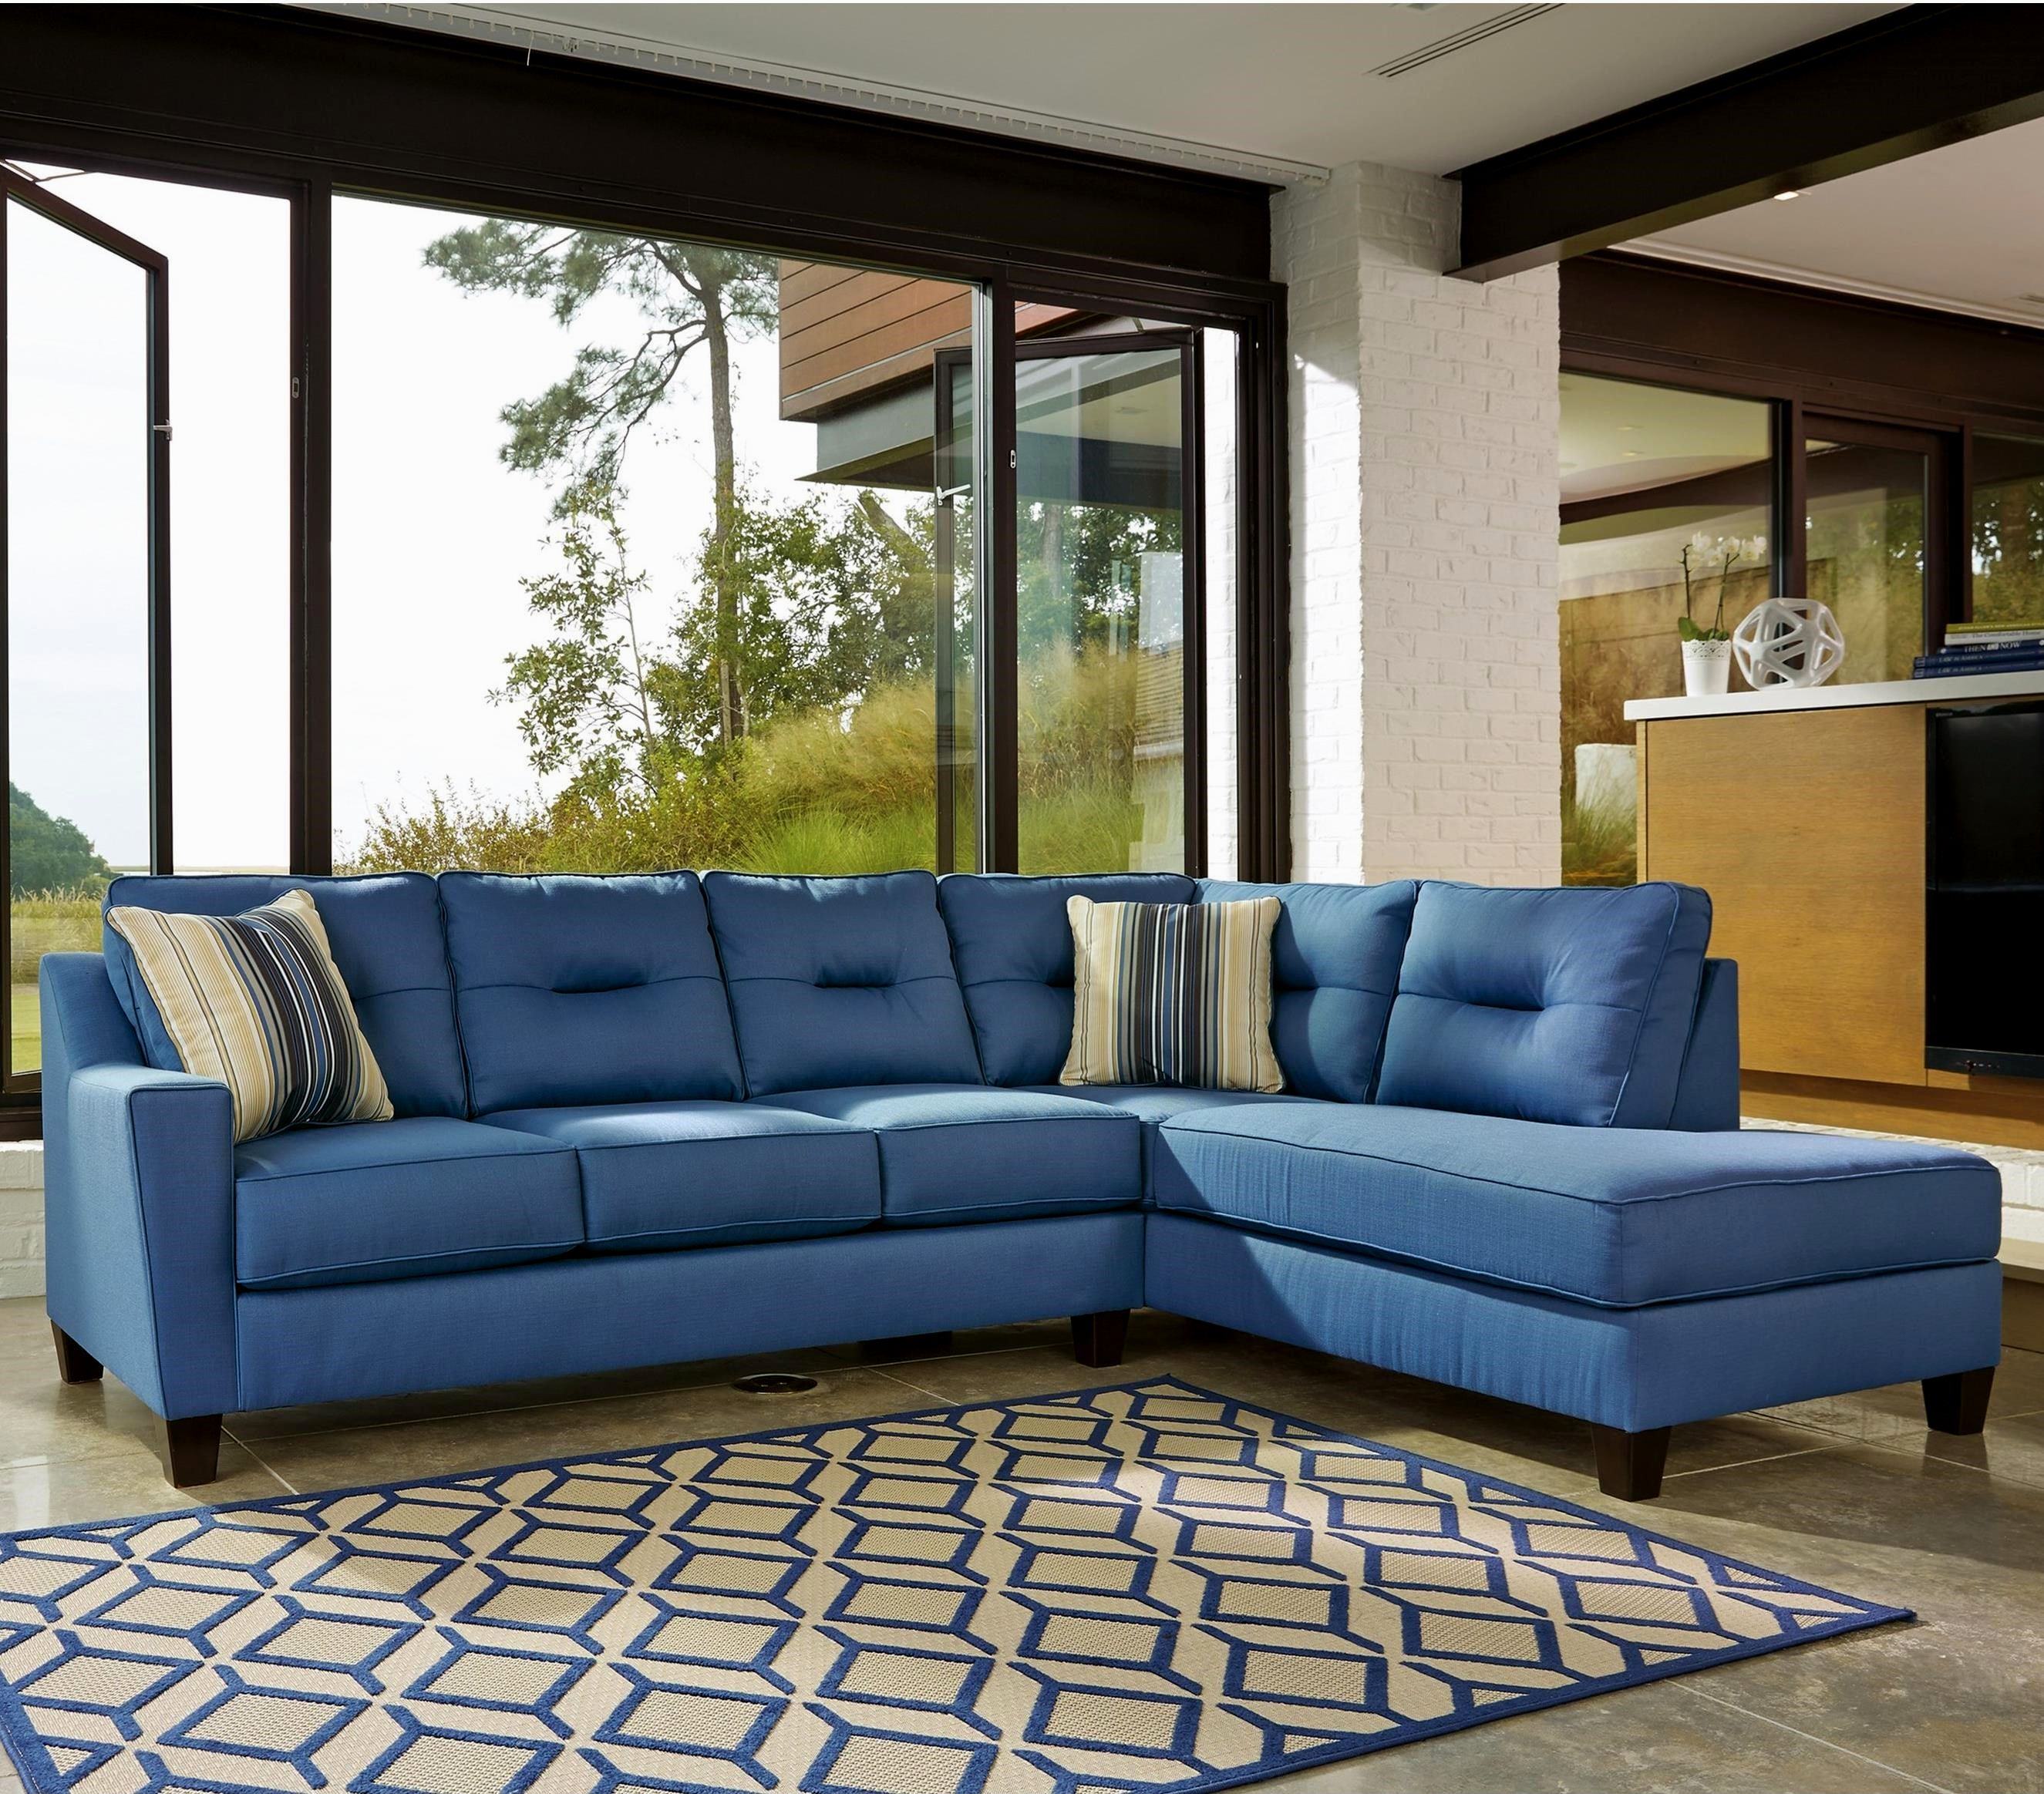 excellent queen sleeper sofa collection-Sensational Queen Sleeper sofa Decoration